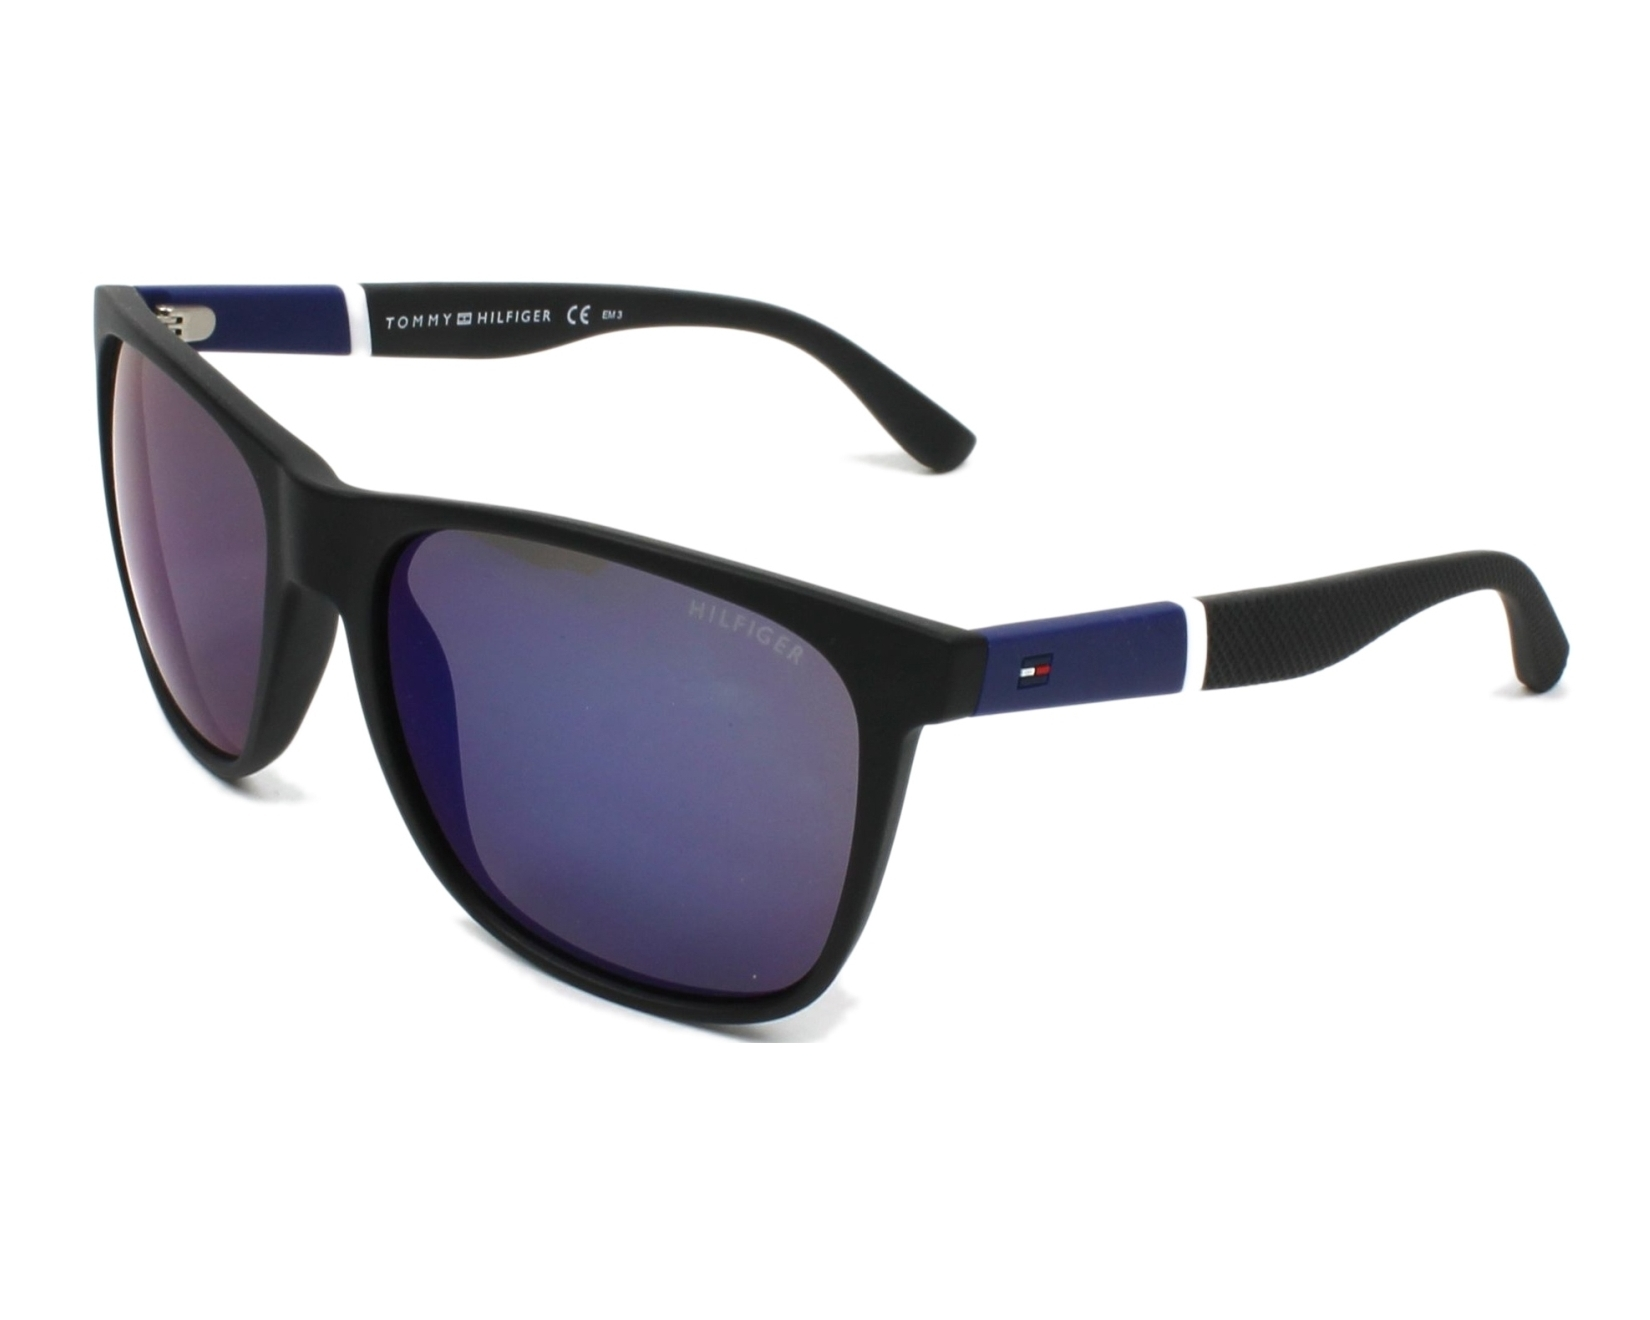 thumbnail Sunglasses Tommy Hilfiger TH-1281-S FMA XT - Black profile view 26af799f05